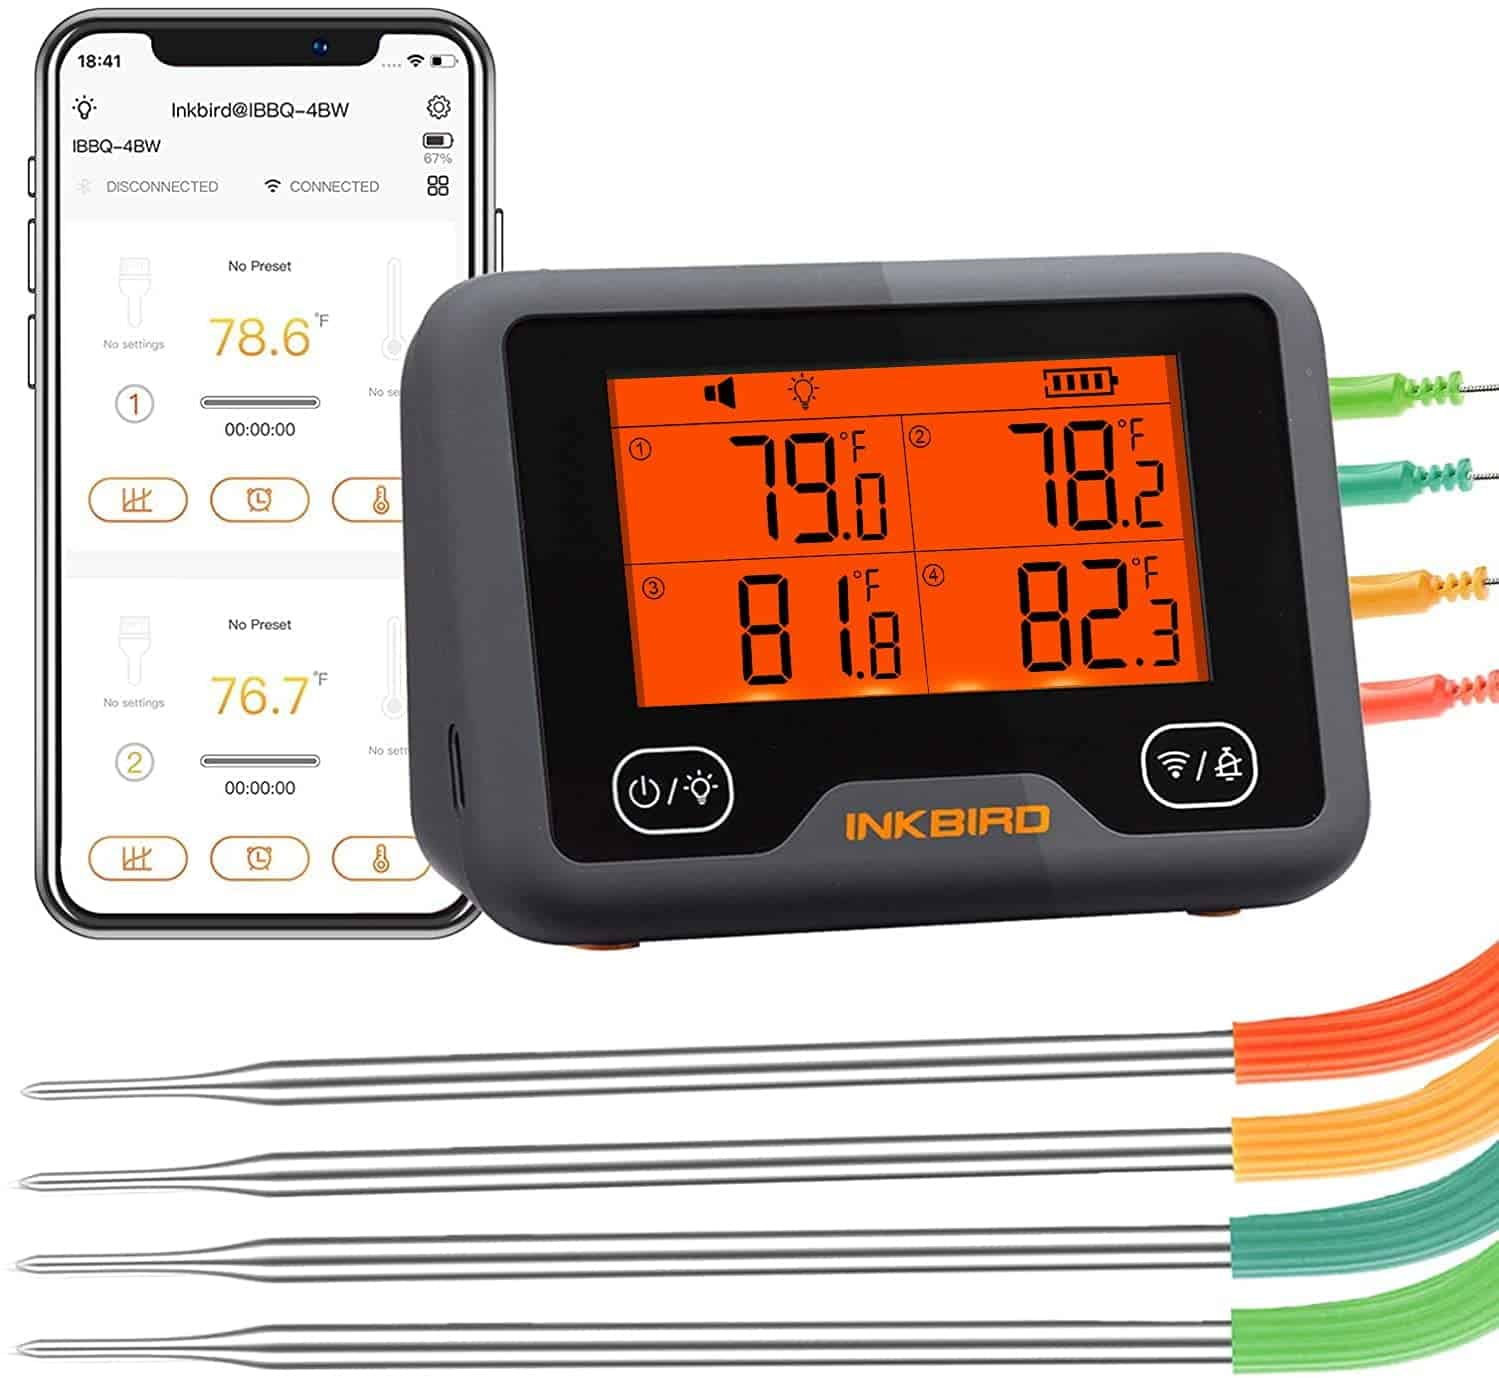 Best Bluetooth BBQ thermometer over large distances- Inkbird IBBQ-4BW